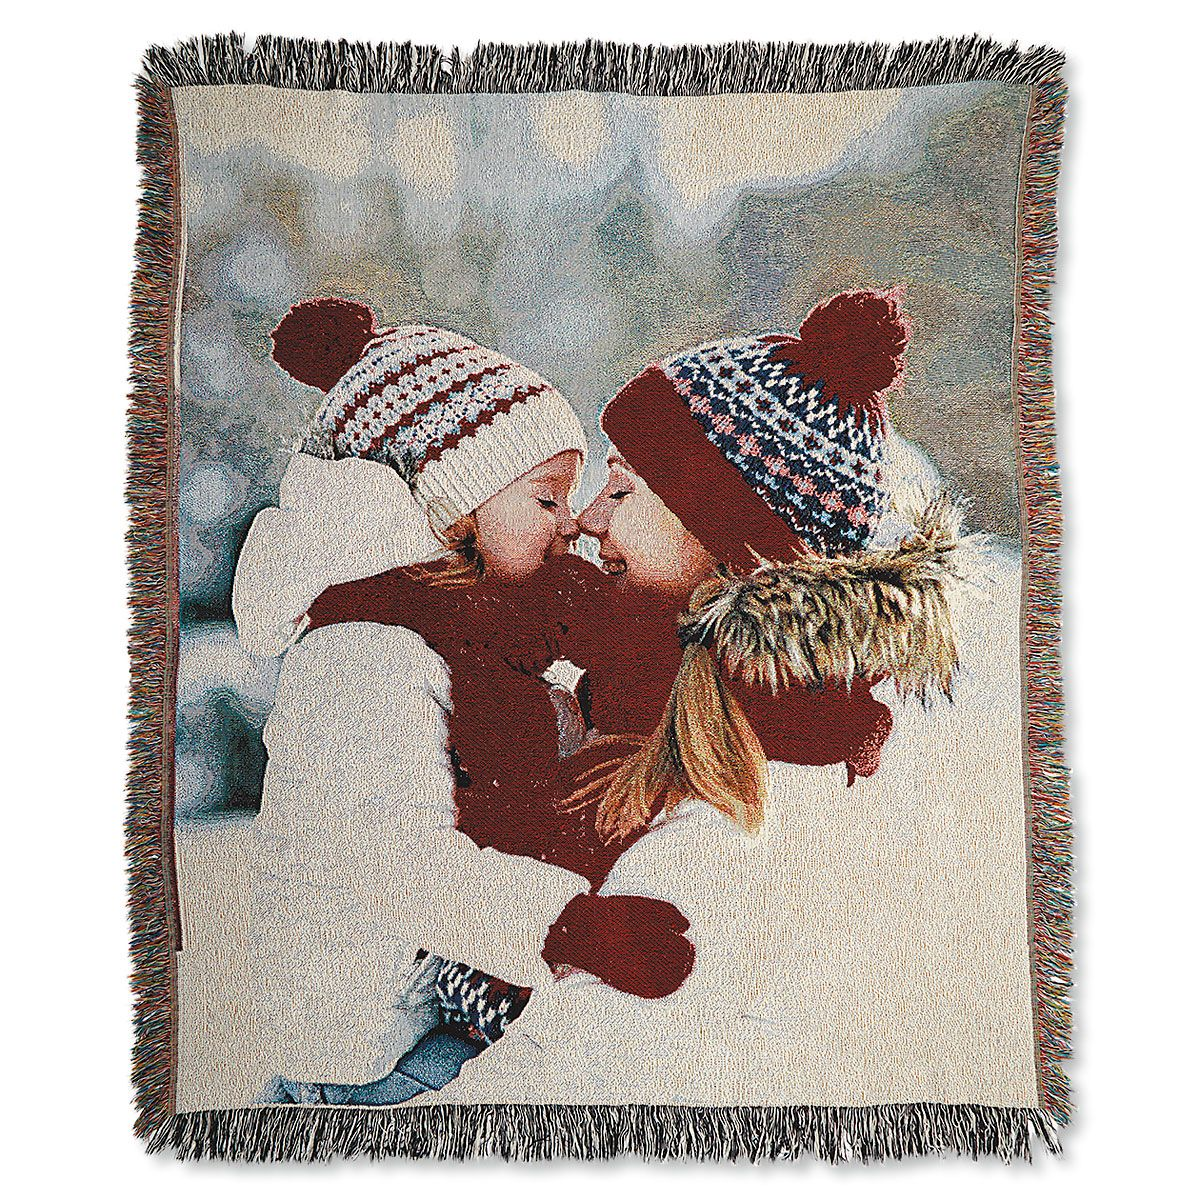 Full Woven Personalized Photo Throw